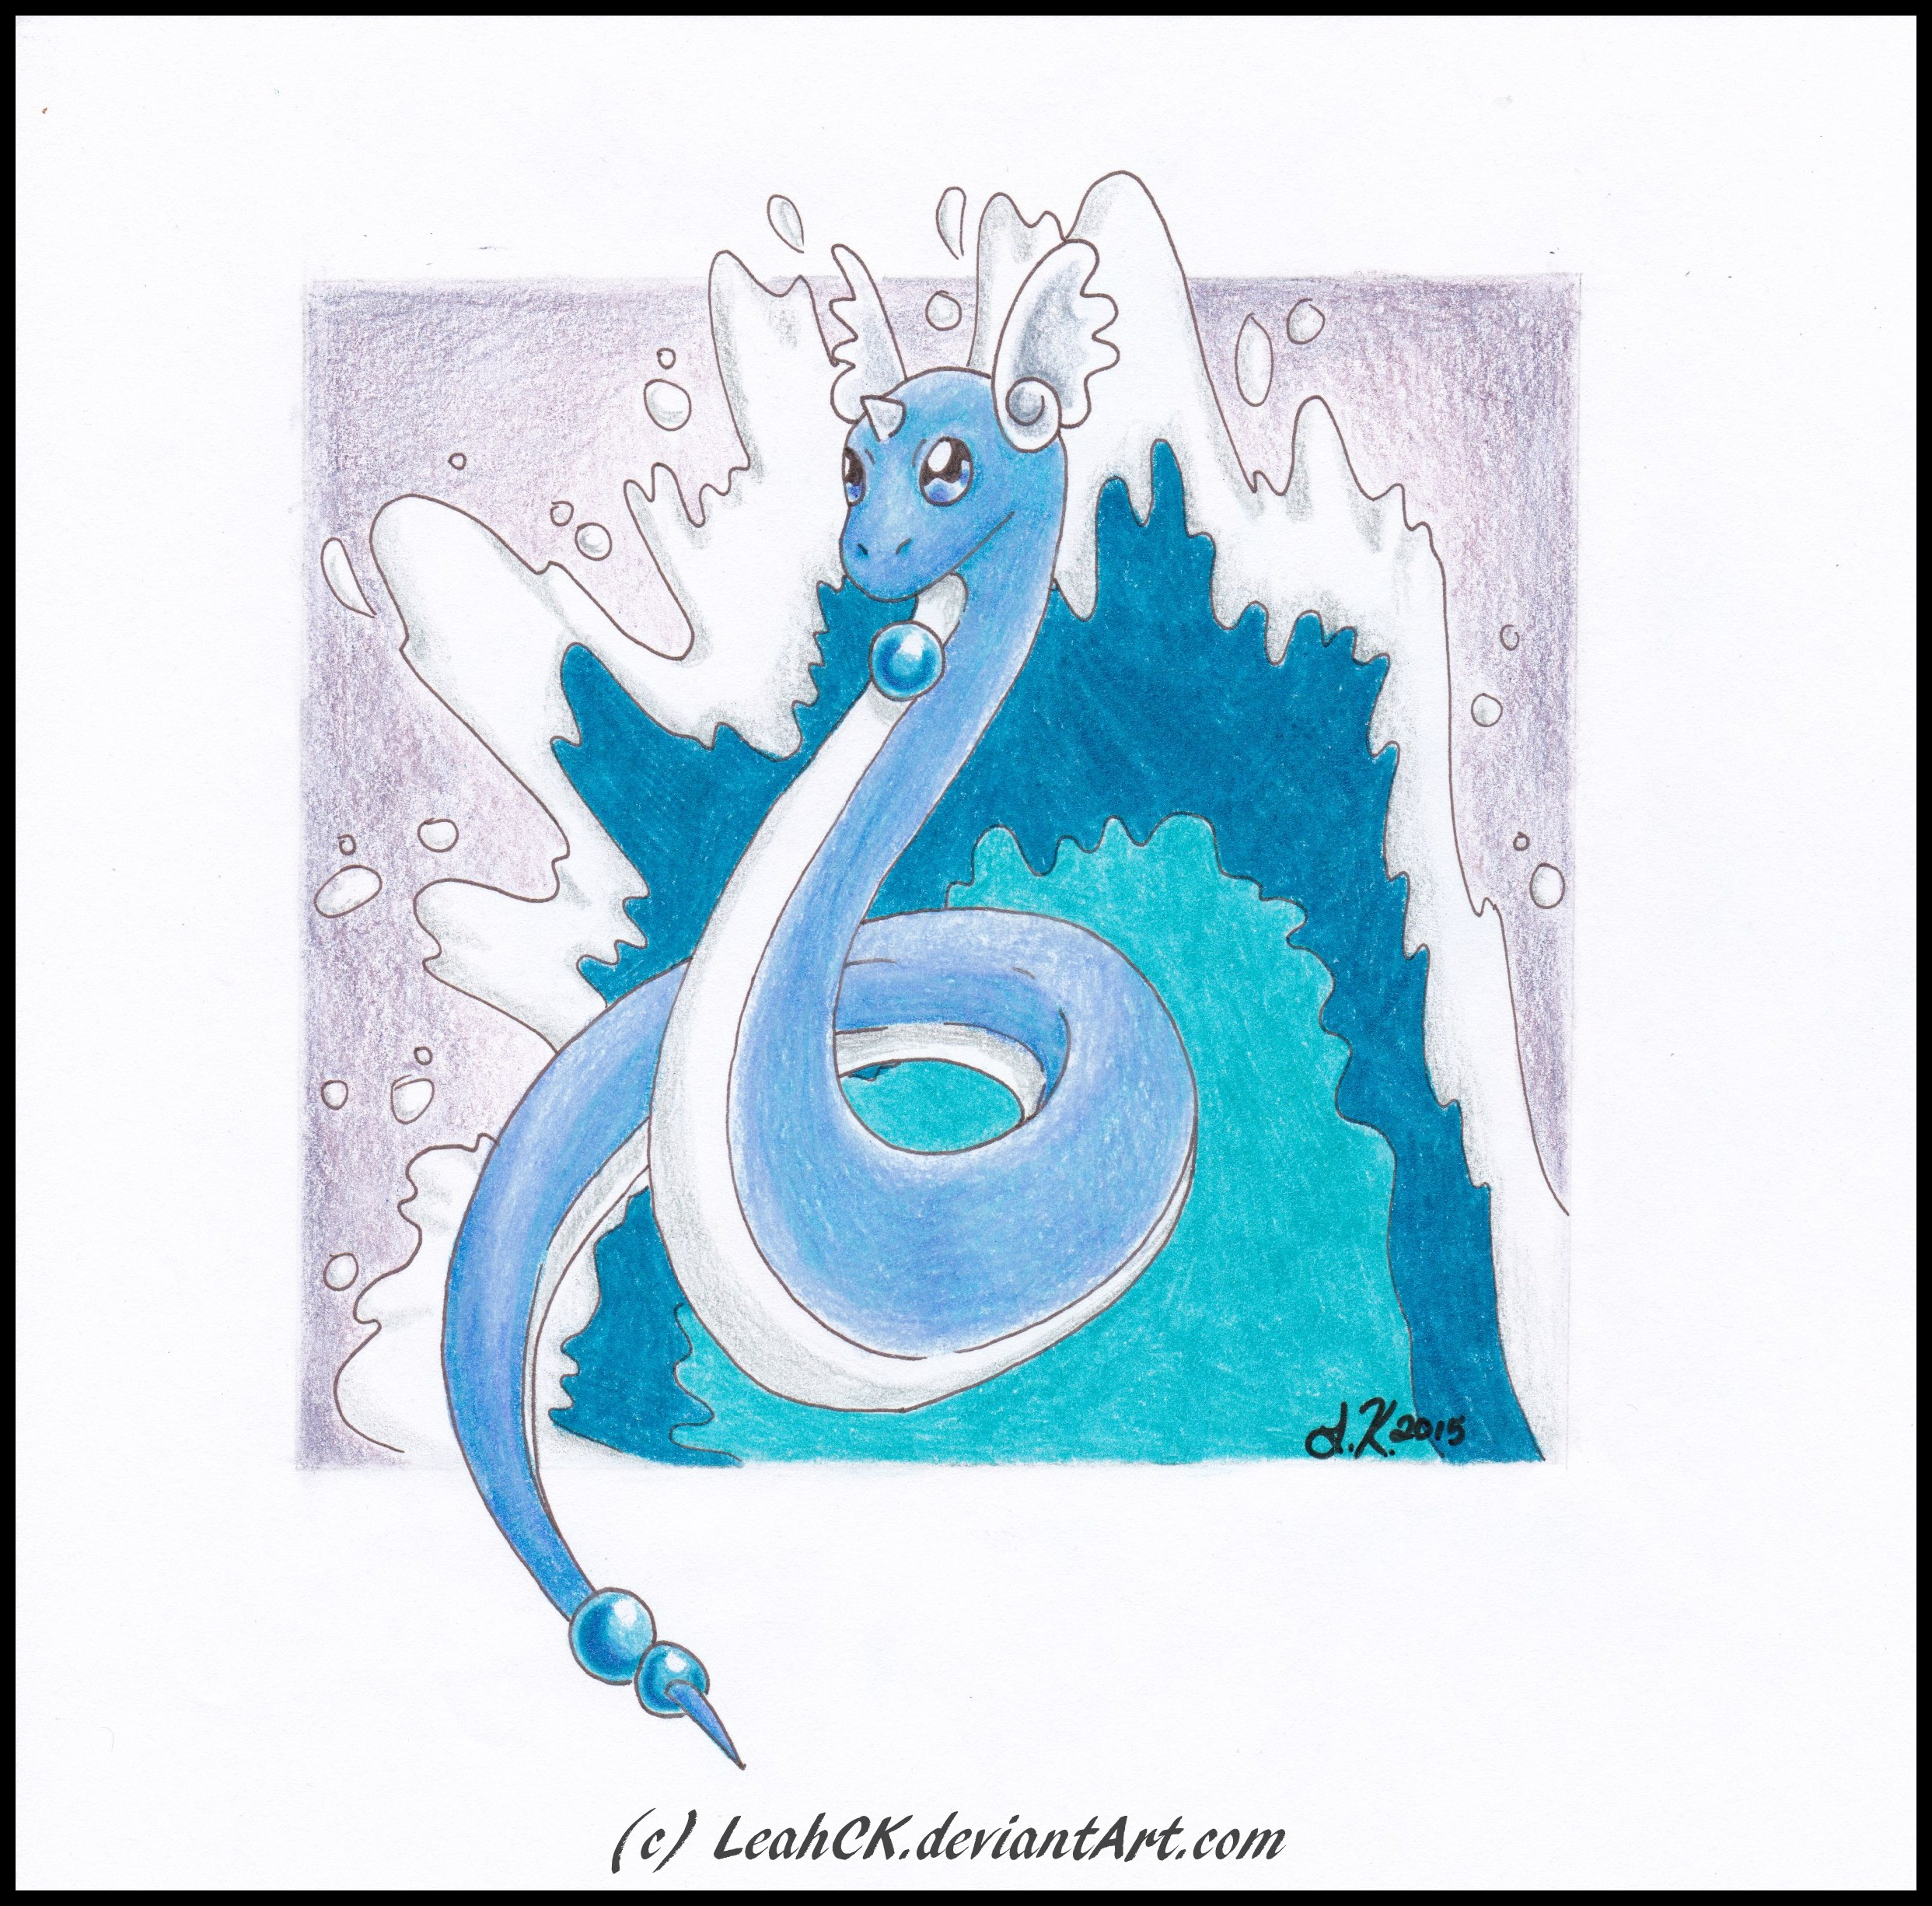 Dragonair-single